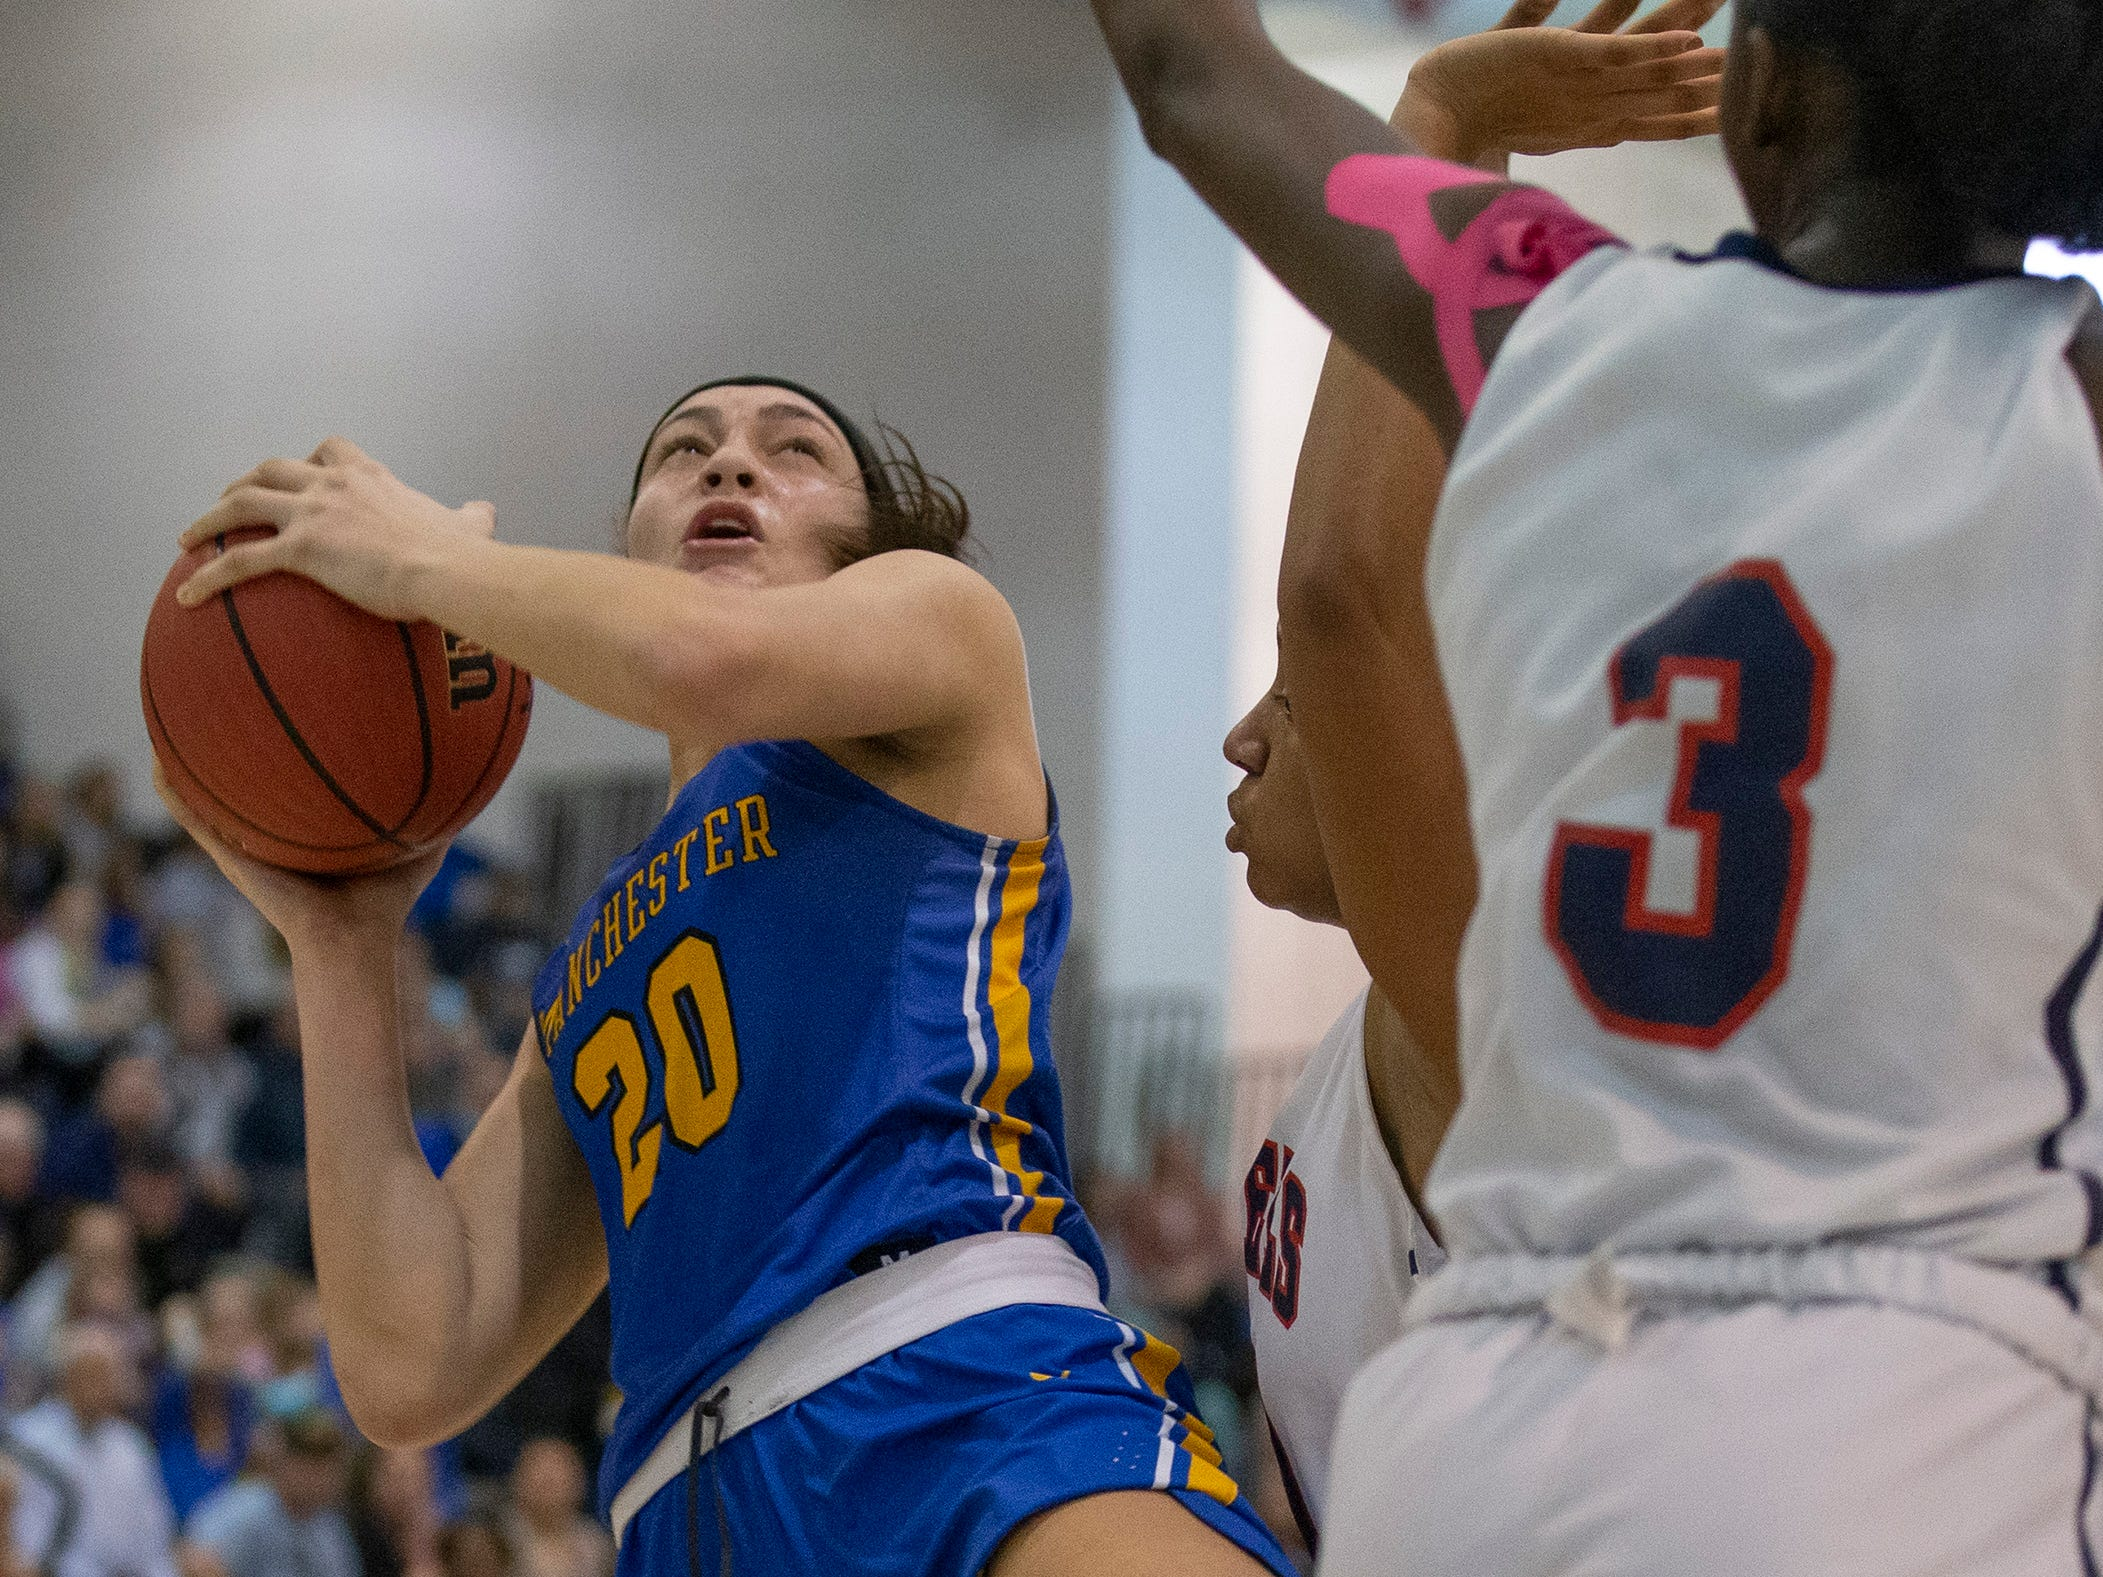 Manchester's Destiny Adams takes a fall away shot during first half action. Manchester Girls Basketball vs Saddle River Day in NJSIAA Tournament of Champions Semifinal in Toms River on March 14, 2019.